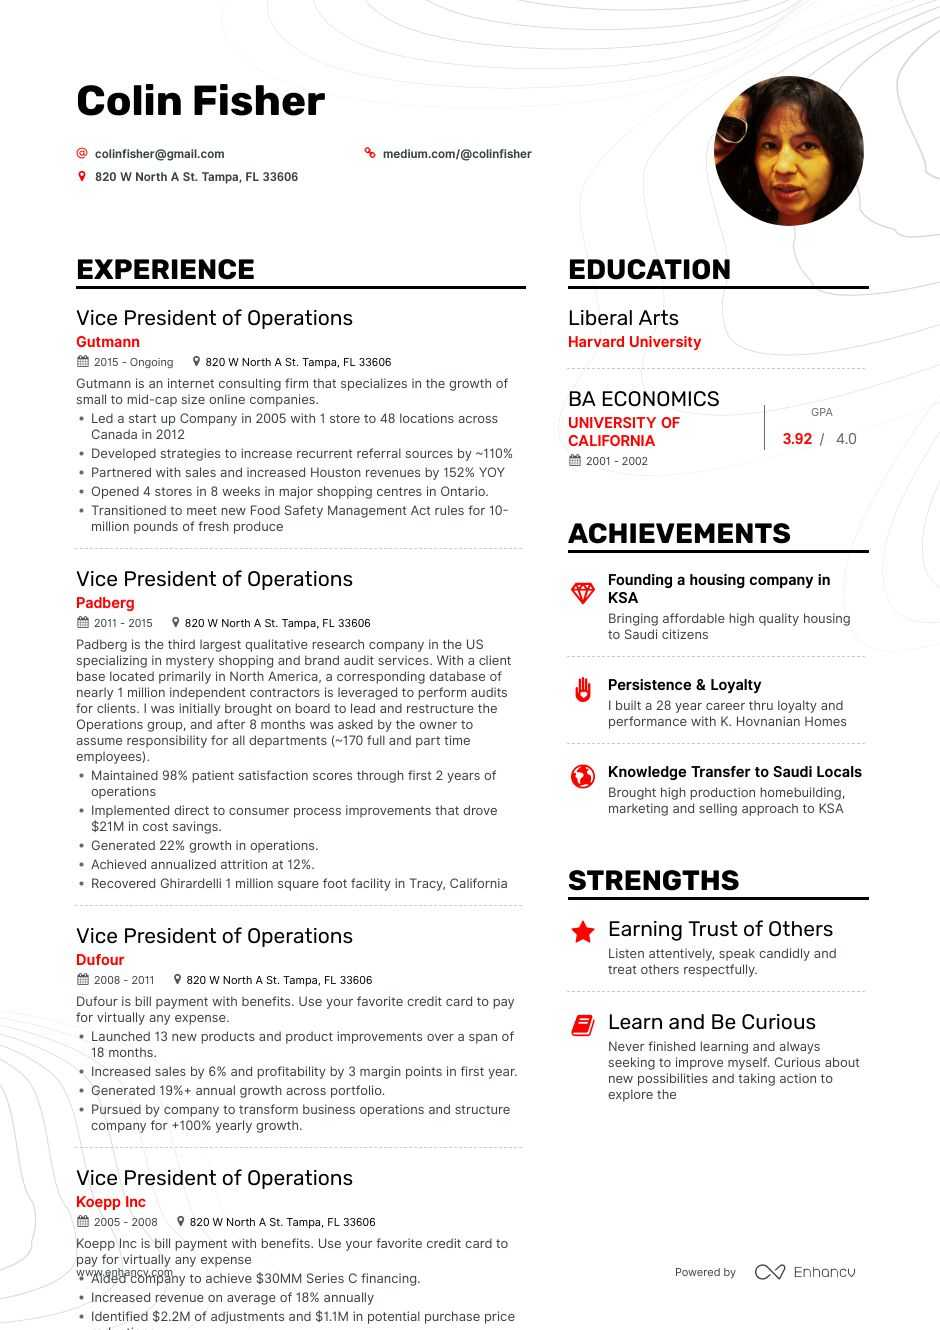 vice president of operations resume example for enhancv optical lab technician public Resume Vice President Of Operations Resume